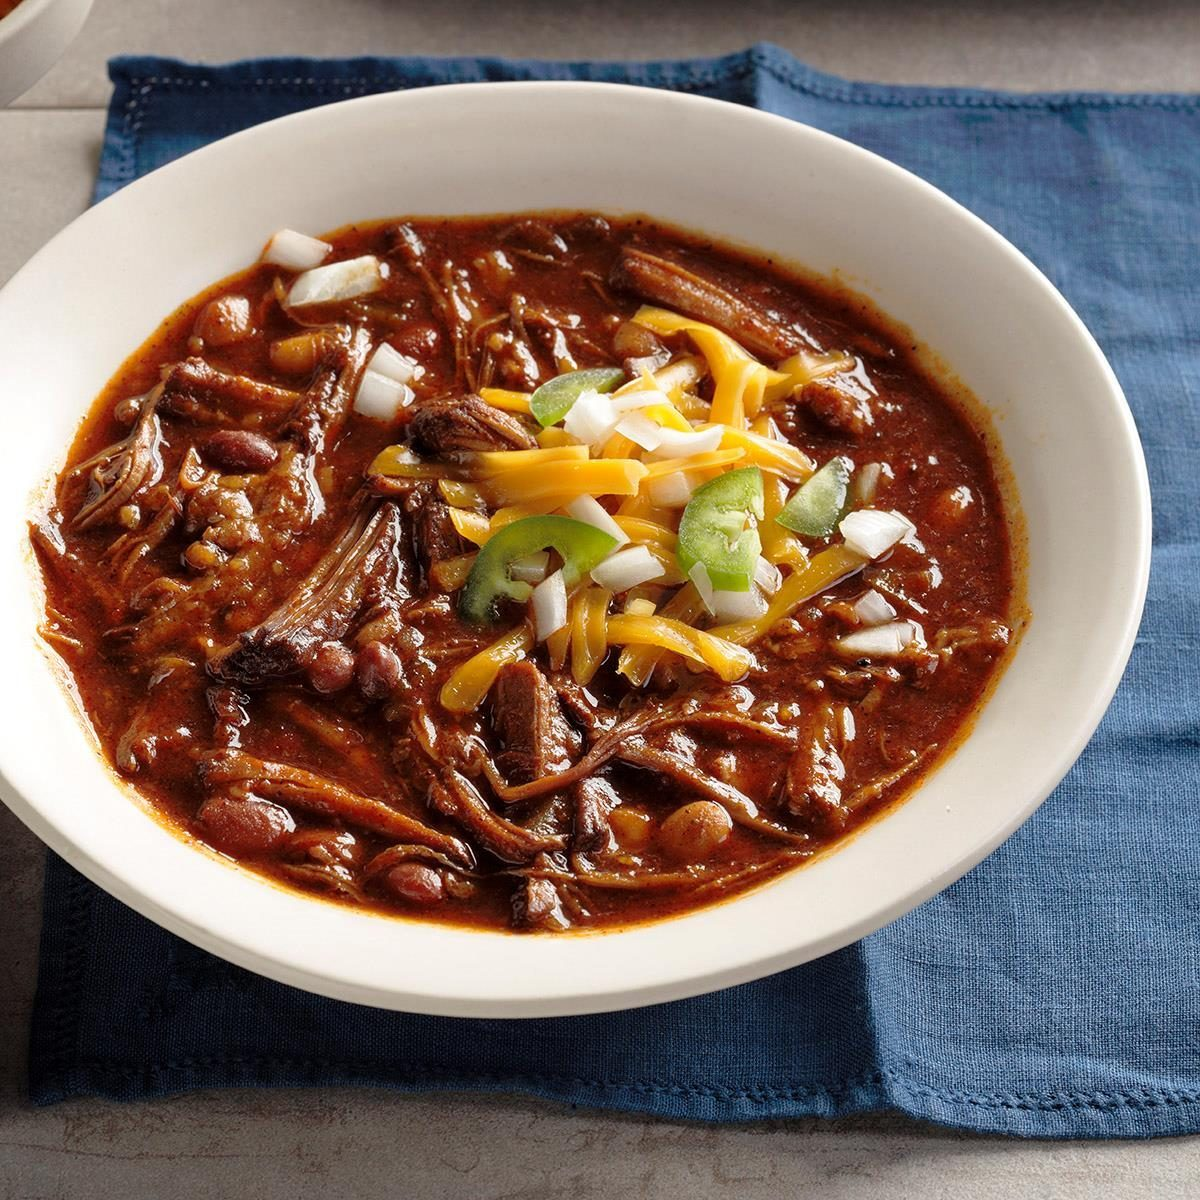 Barbecued Beef Chili